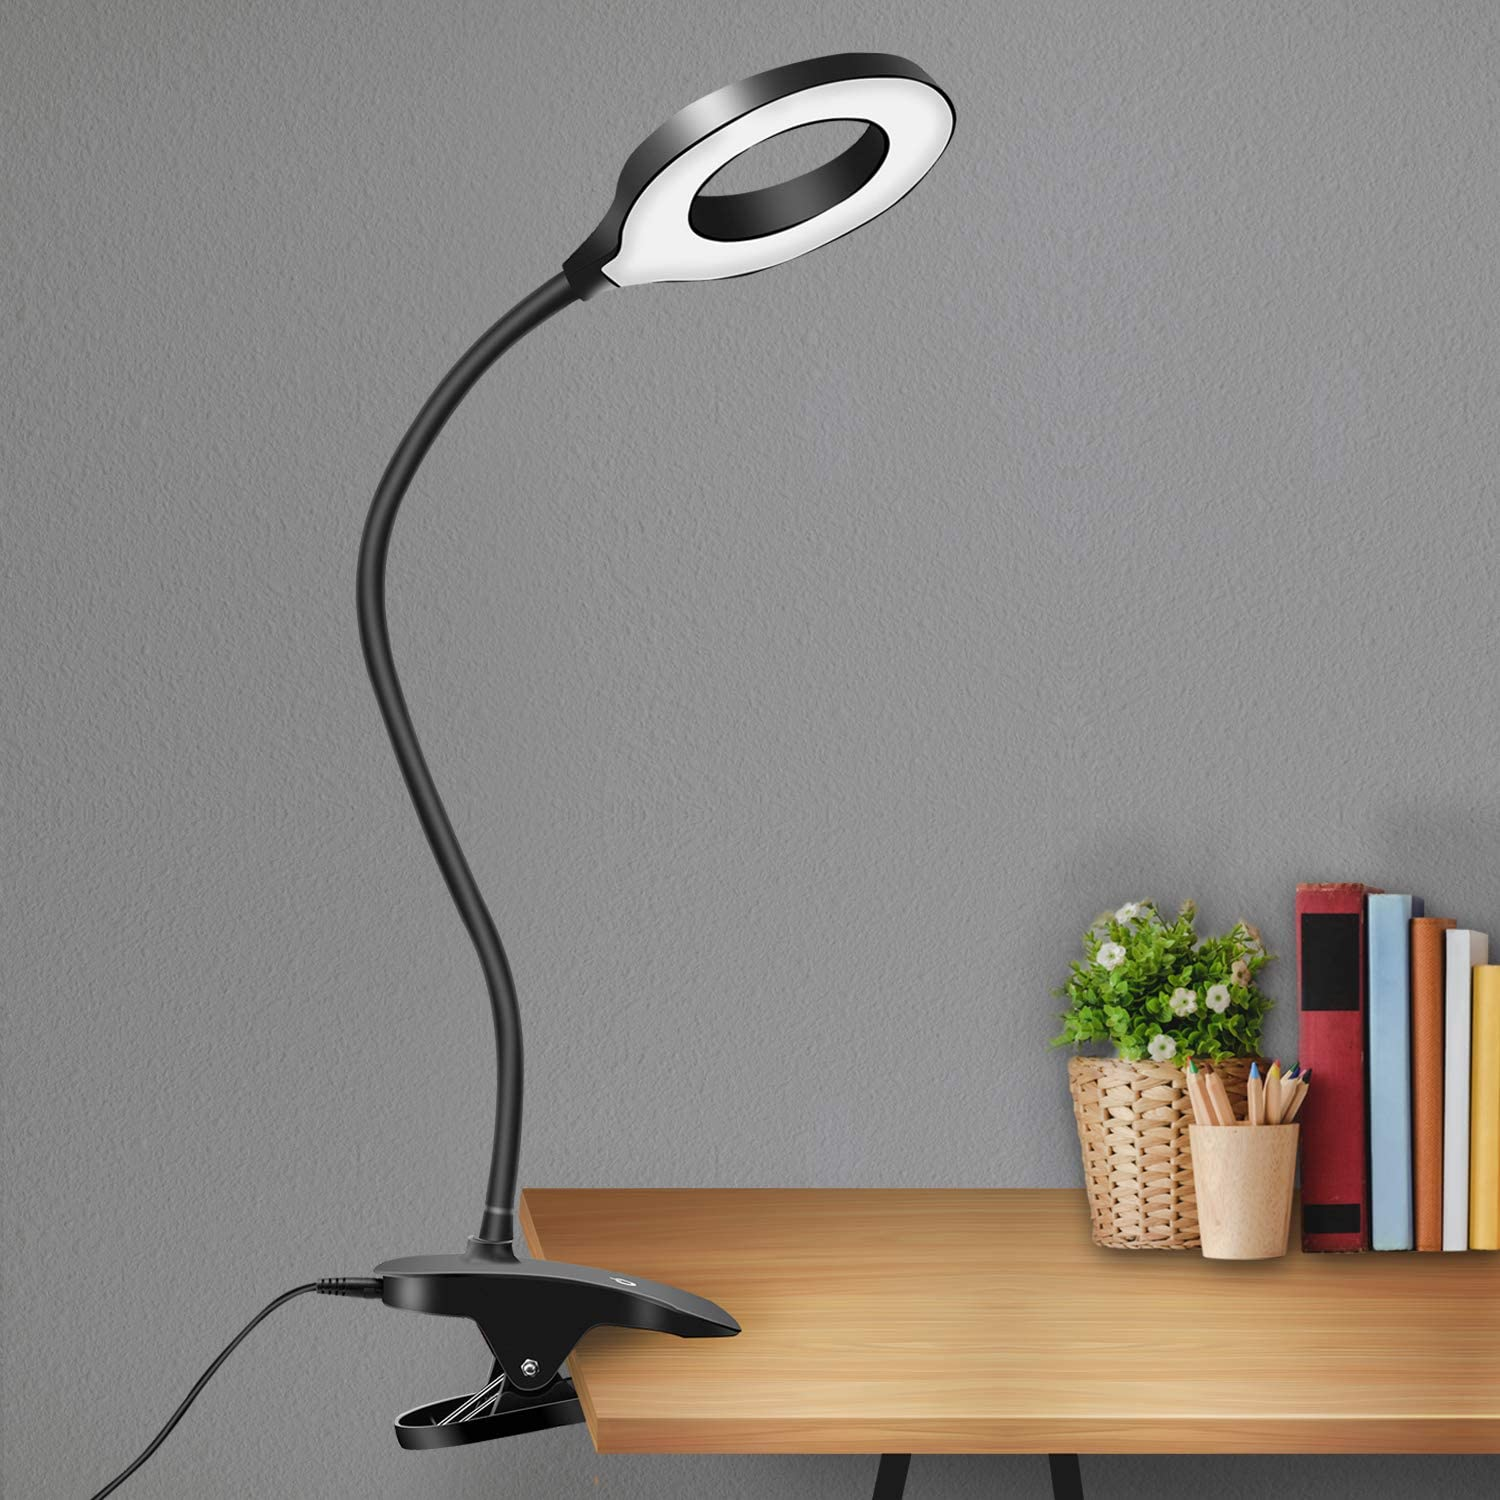 GLFERA Clamp LED Desk Lamp, Flexible Gooseneck Table Lamp, 3 Lighting Modes with 3 Brightness Levels, Dimmable Office Lamp with Adapter, Touch-Sensitive Control, Memory Function(Black)